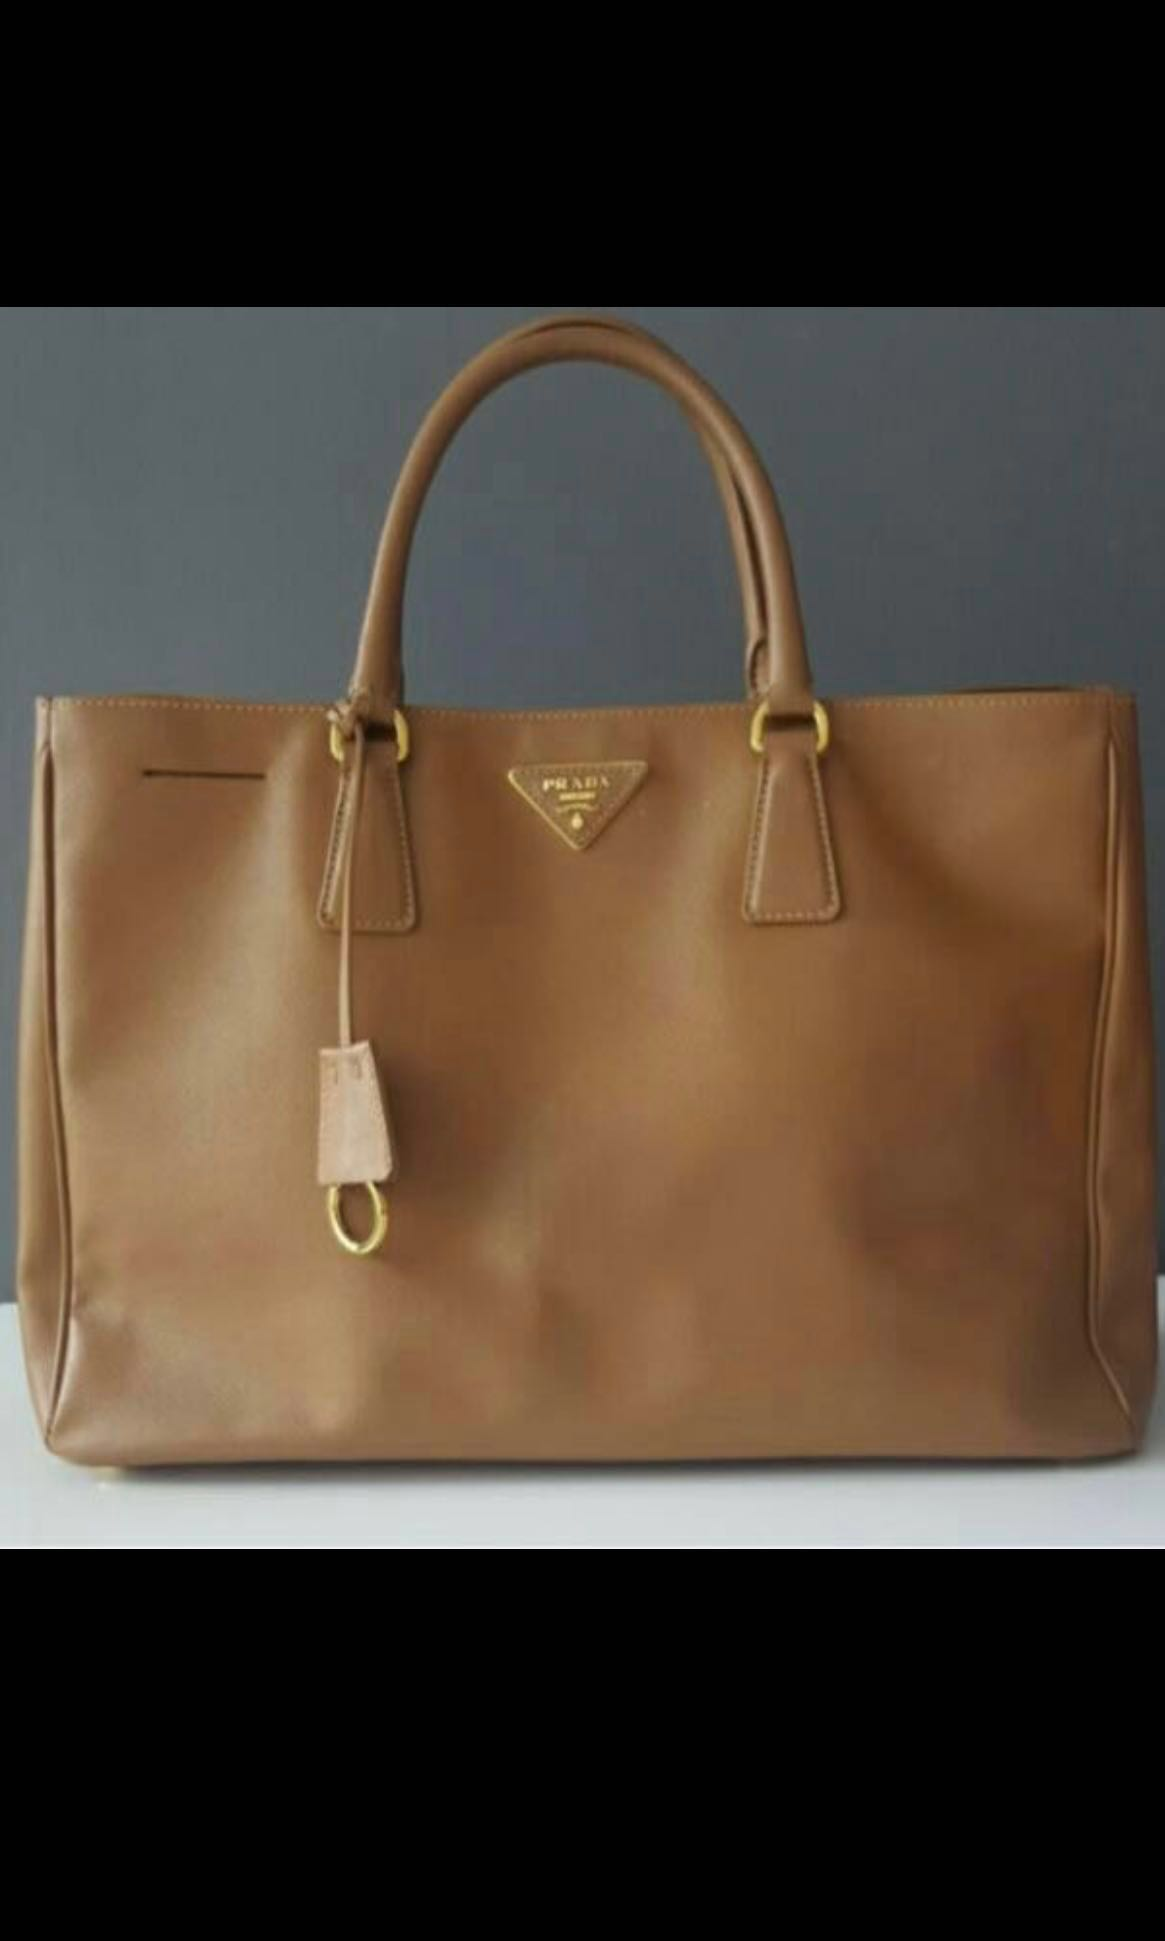 cbee4db27552 SALE 👜Authentic PRADA Brown Leather Saffiano, Luxury, Bags ...